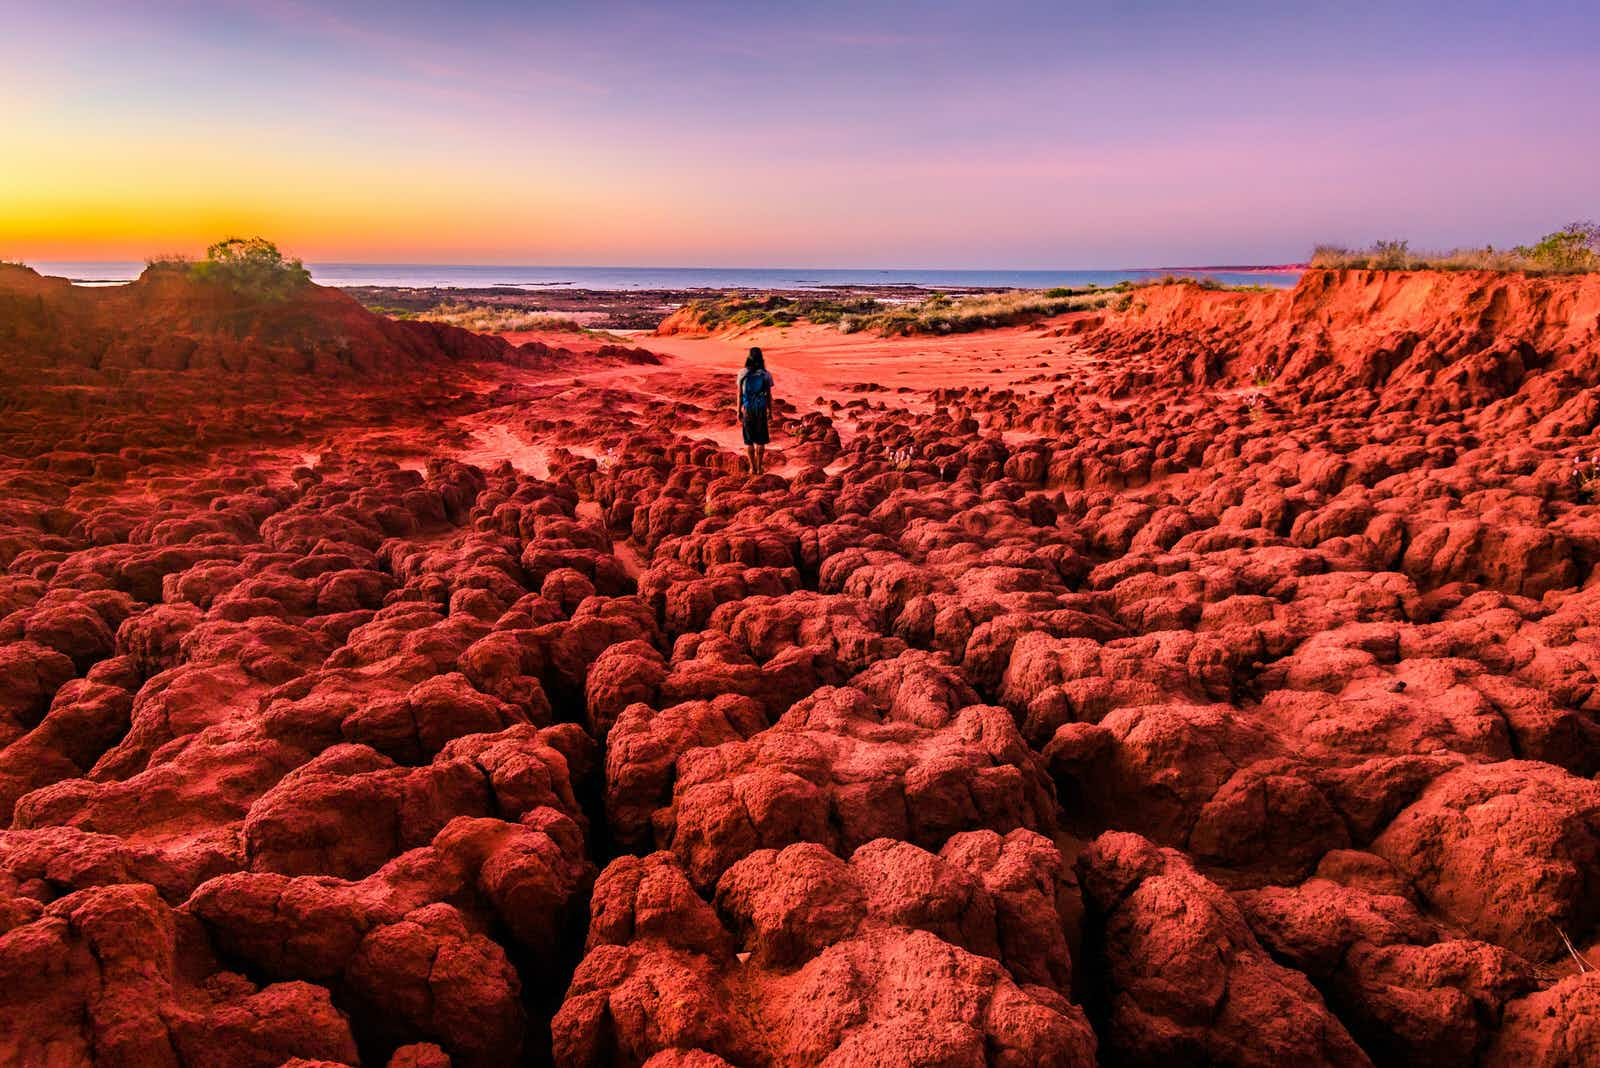 A woman looks out at the sunset from the red pindan soils of James Price Point at Dampier Peninsula. Western Australia